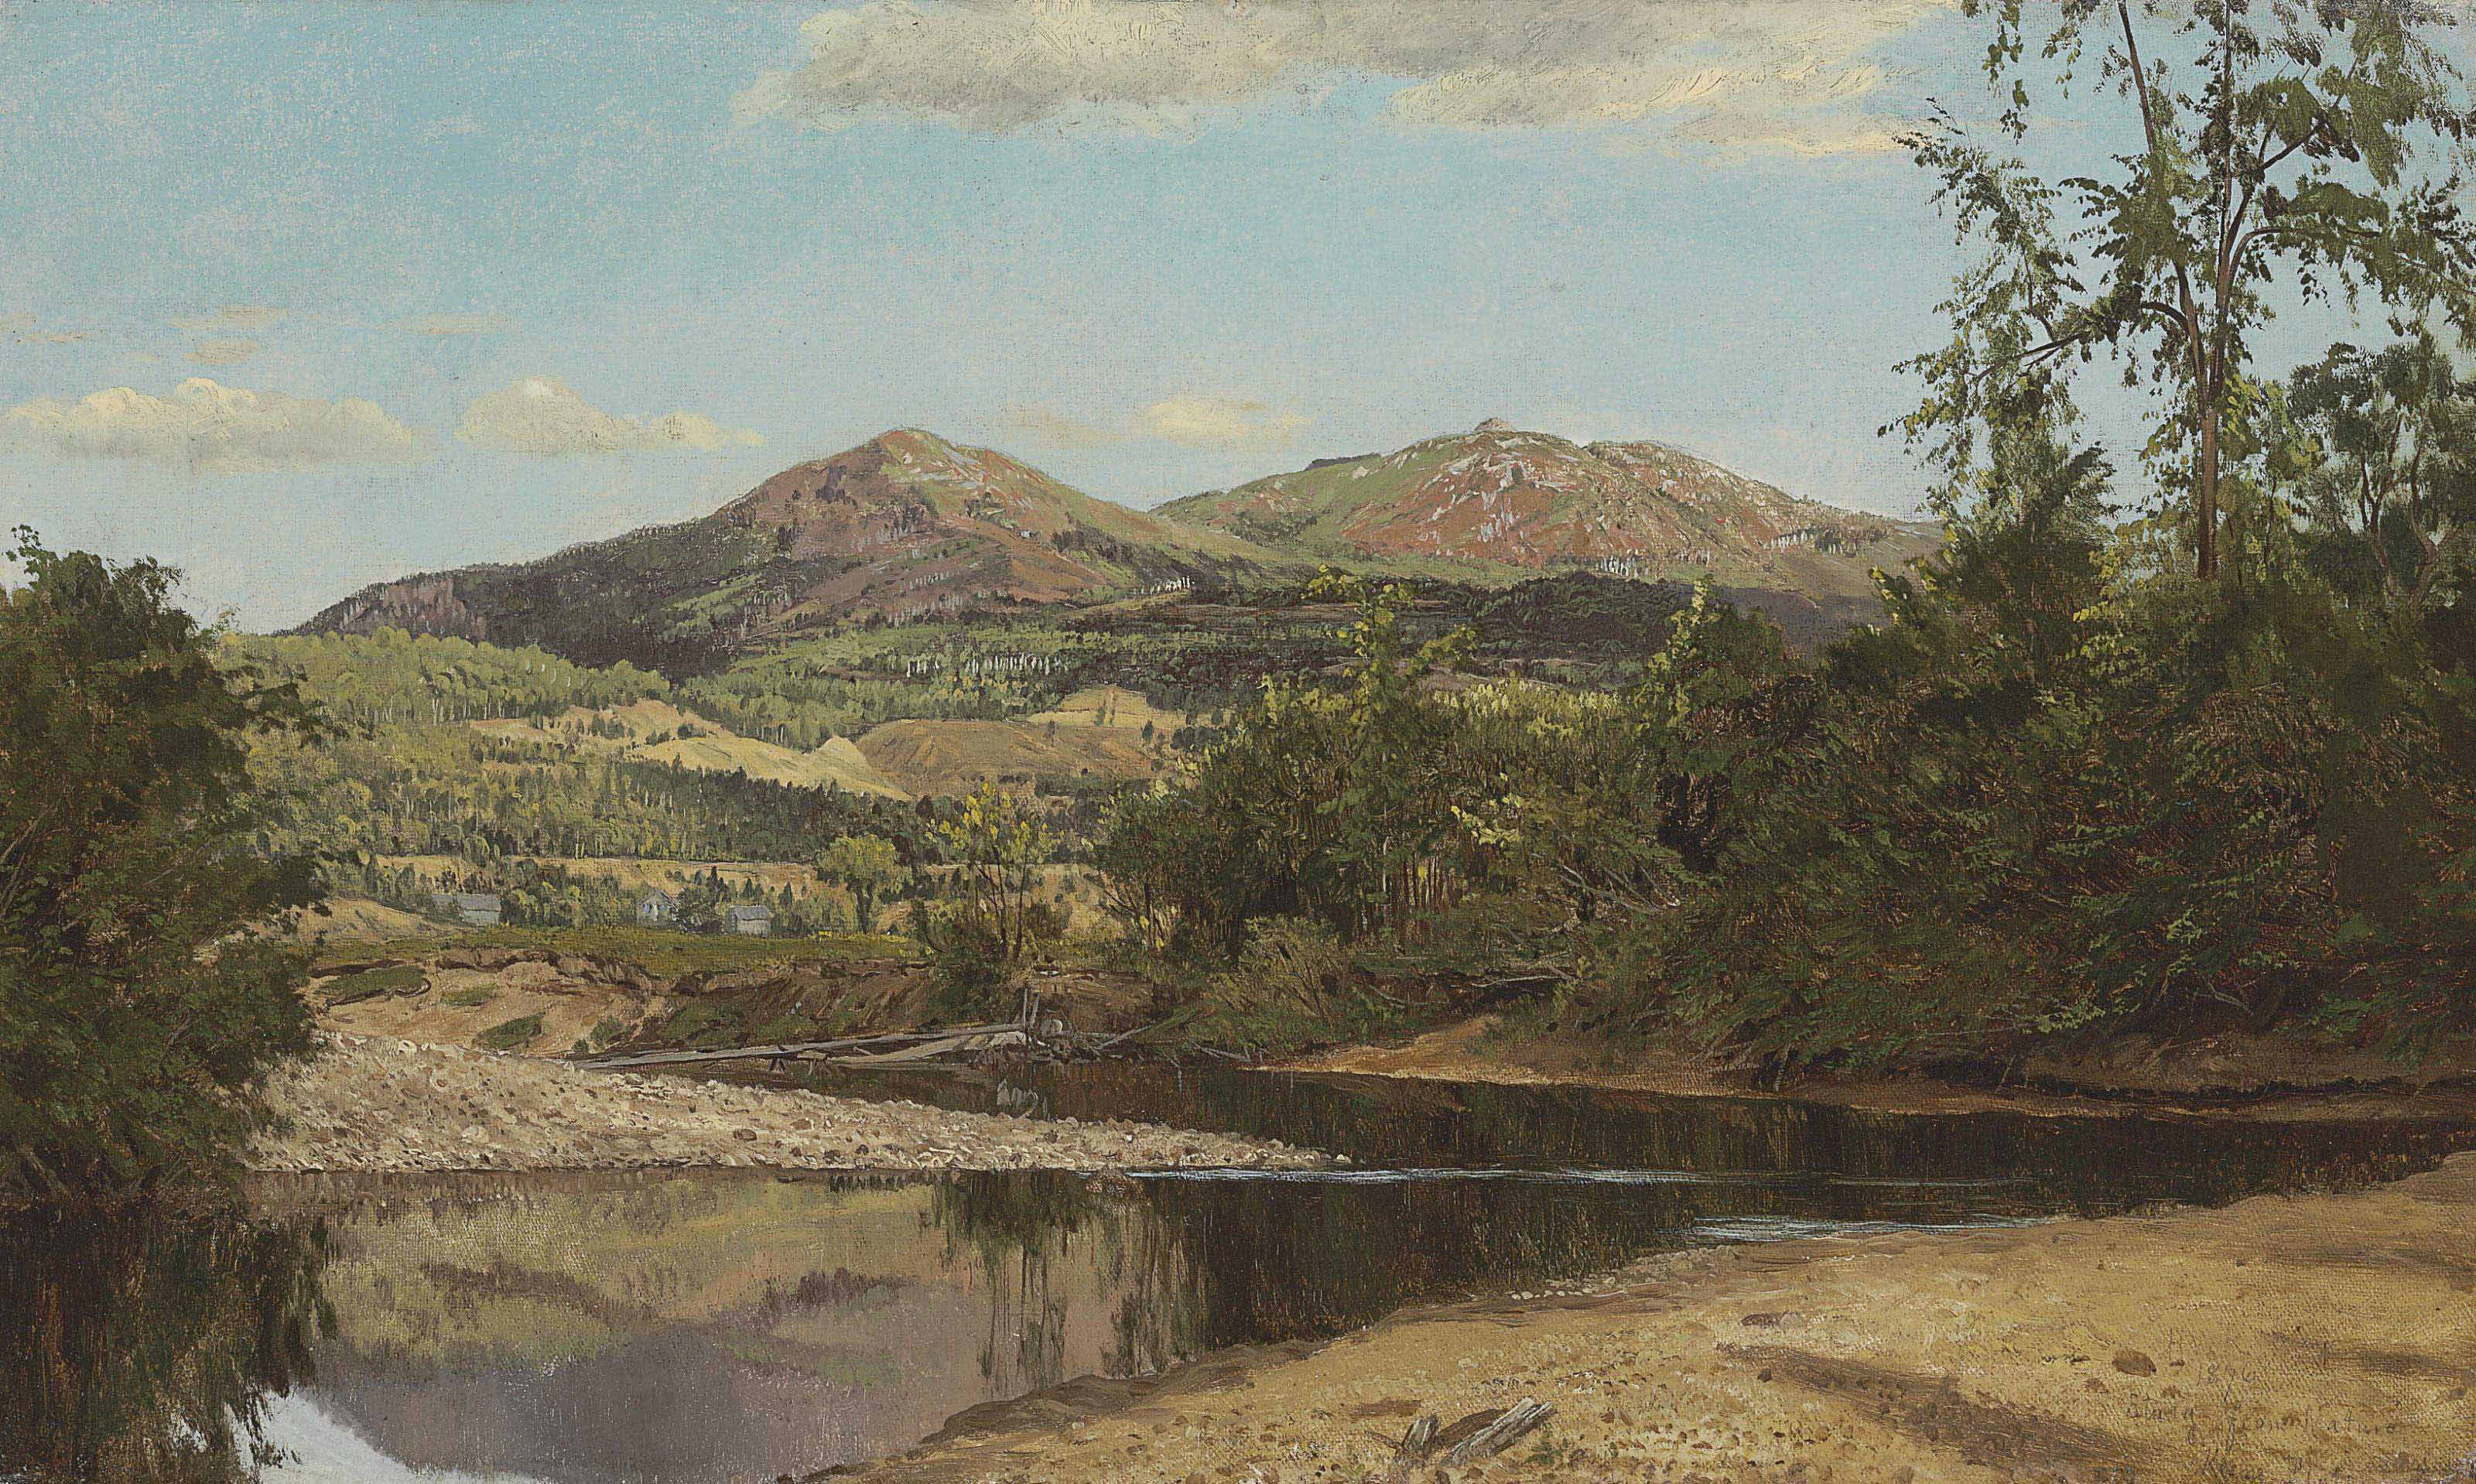 Study from Nature: Keene Flats